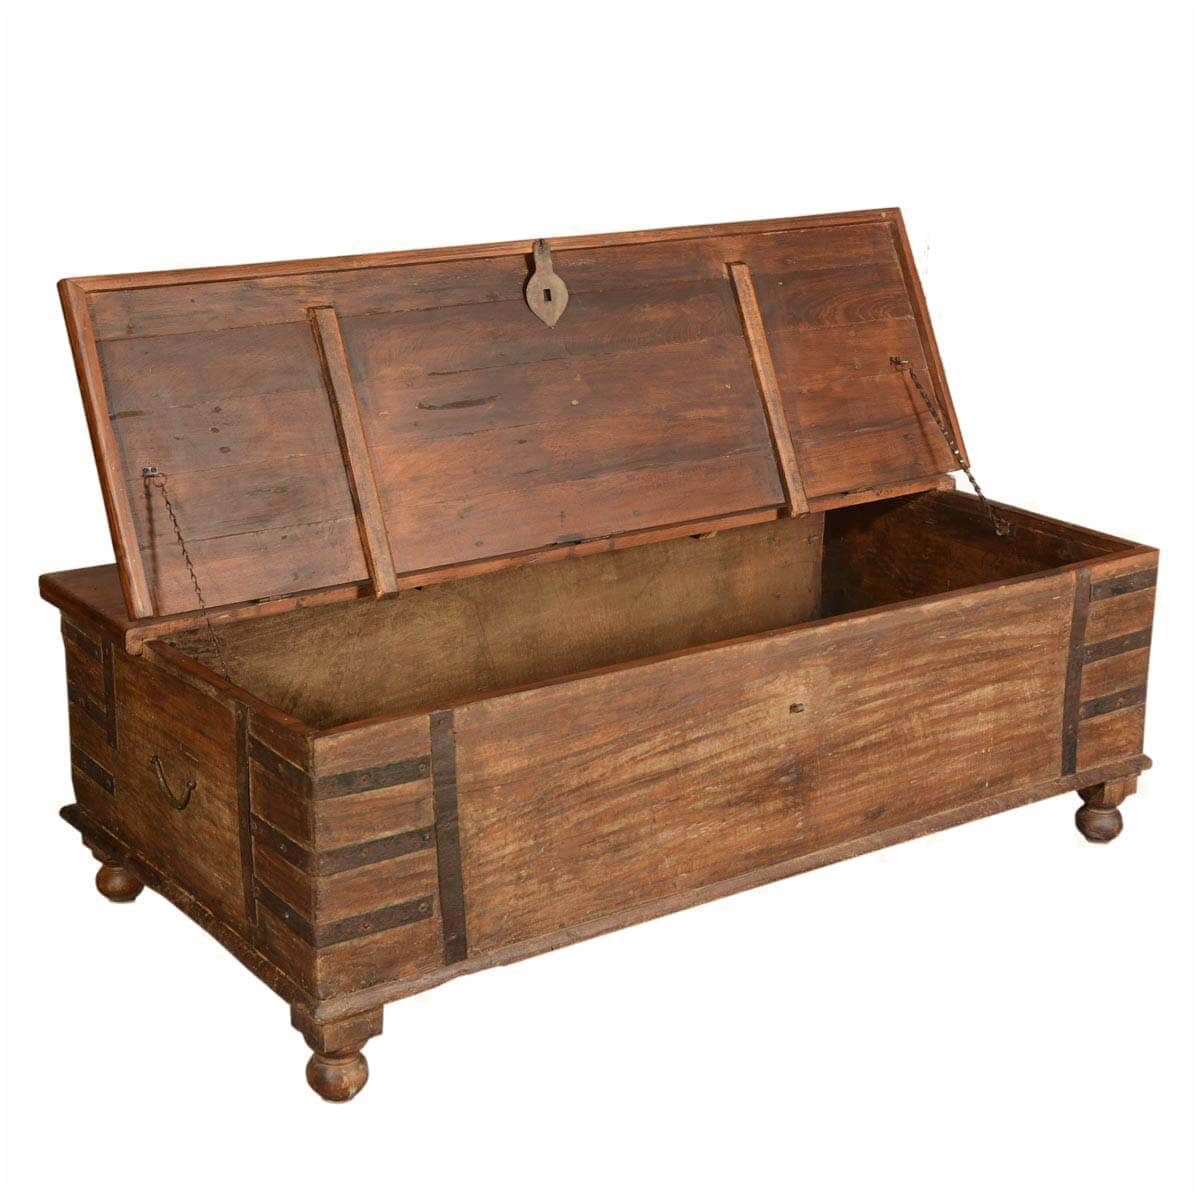 Artisan Collection Rustic Reclaimed Wood Standing Coffee Table Chest